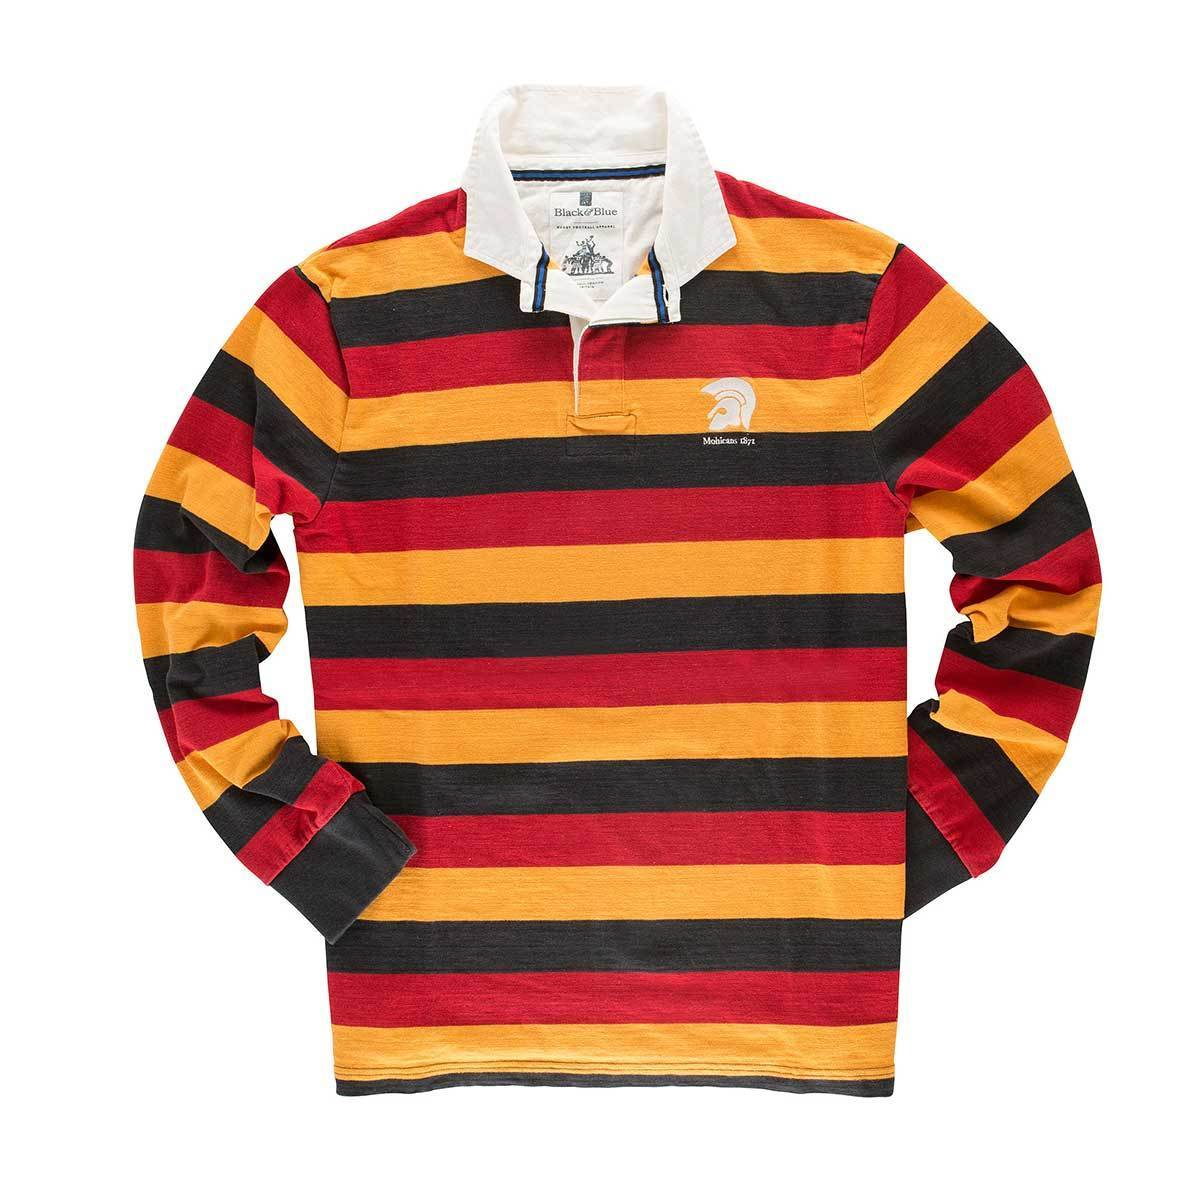 Vintage, Classic Cotton Rugby Shirt | Black & Blue 1871 | Mohicans 1871 Rugby Shirt